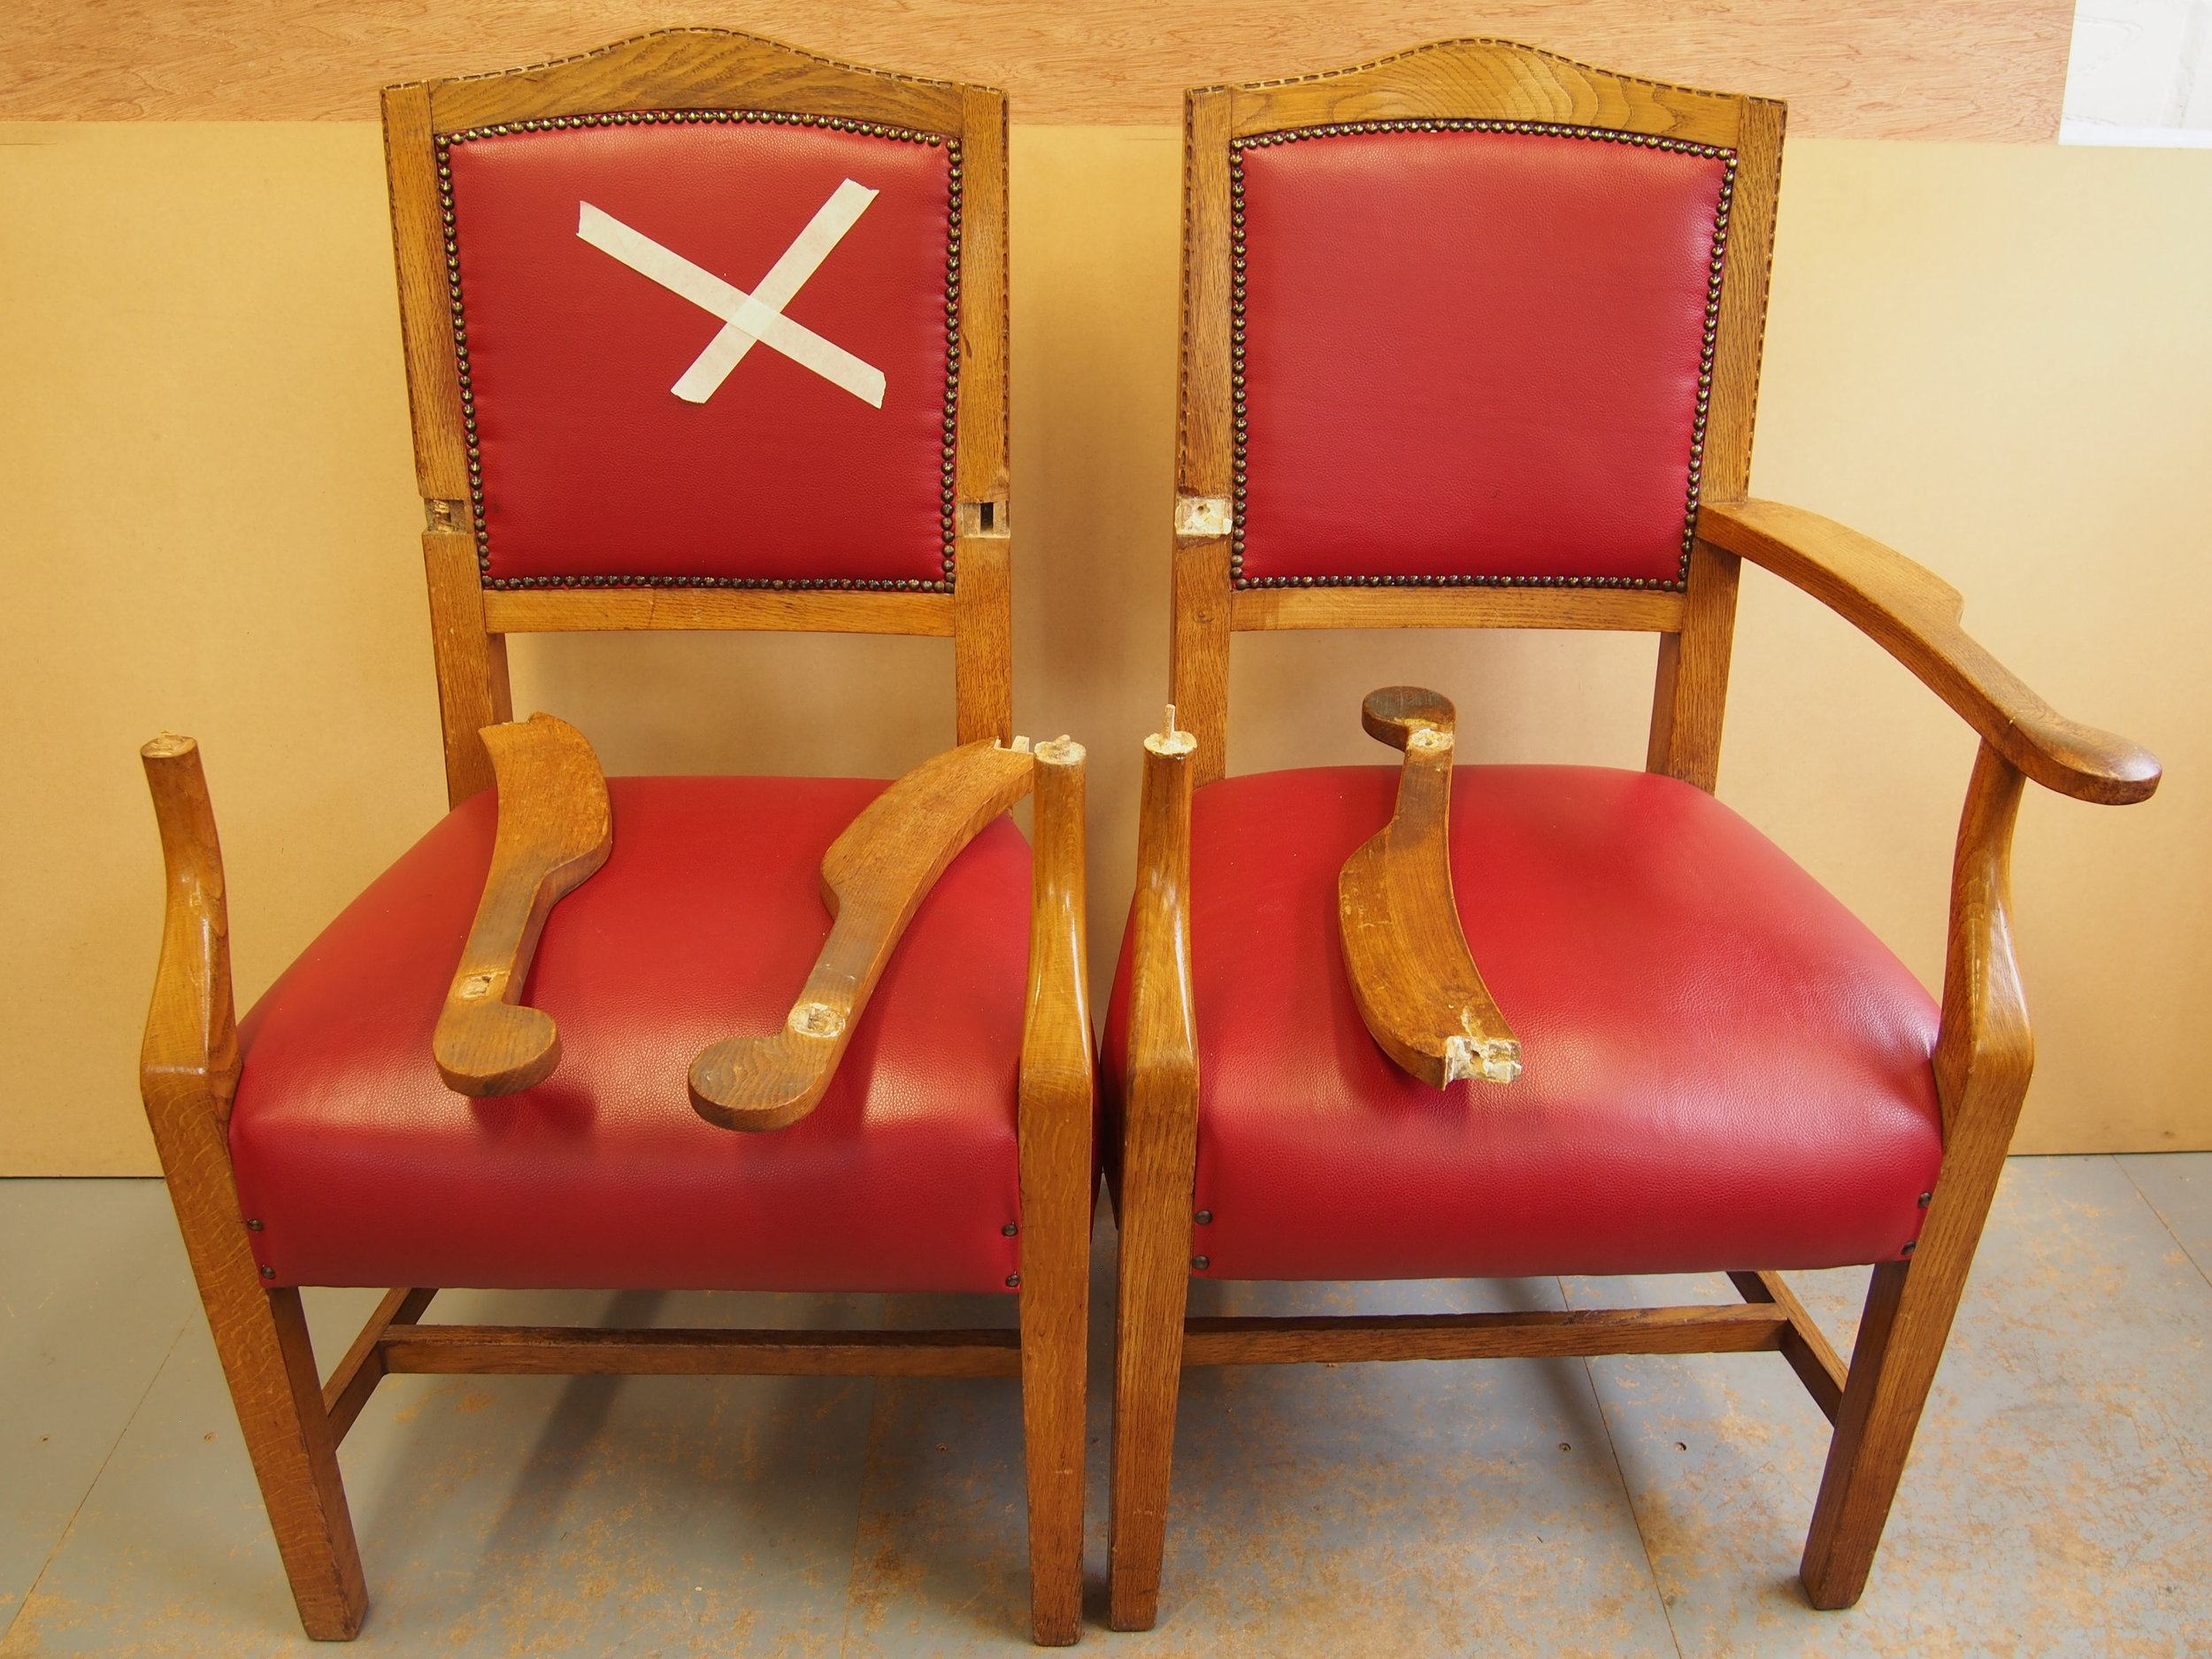 Several Oak conference chairs had broken arm rests which were previously badly repaired, though seeing the dowels and screws that were used to reinforce the broken original mortise and tenon joints. The piece was to be re jointed and fit for purpose.